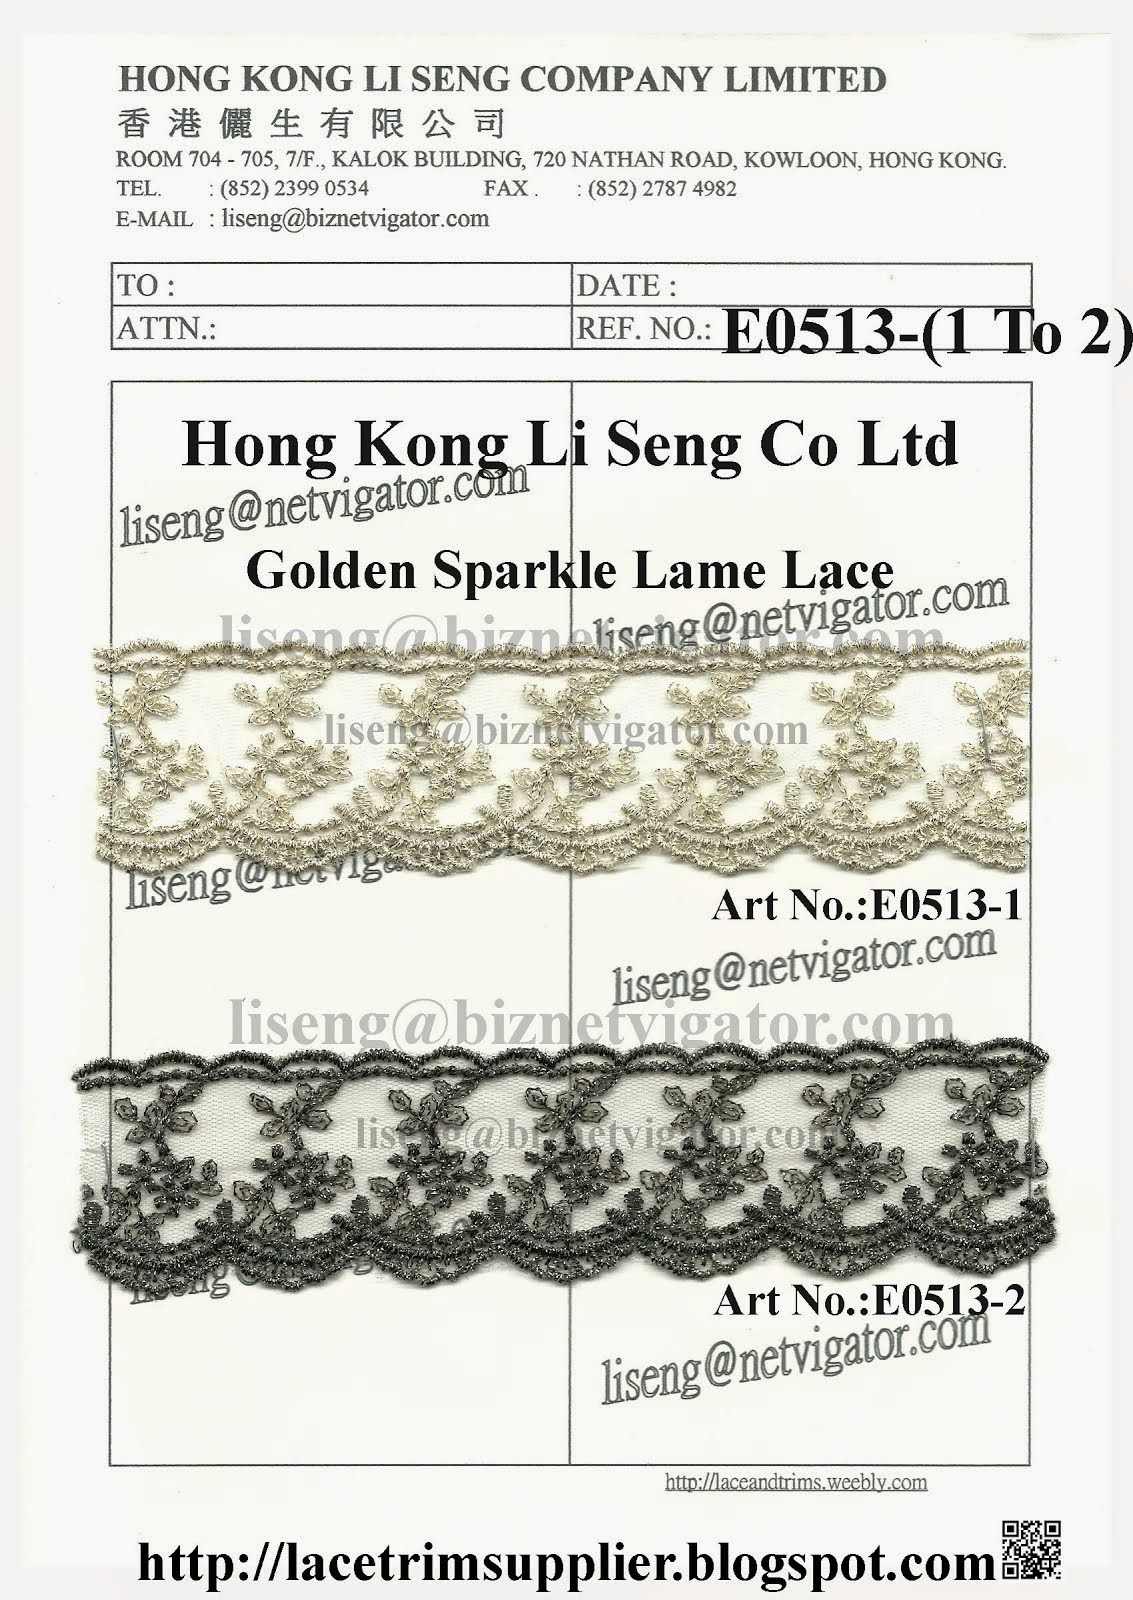 Golden Sparkle Lame Lace Trims Factory - Hong Kong Li Seng Co Ltd